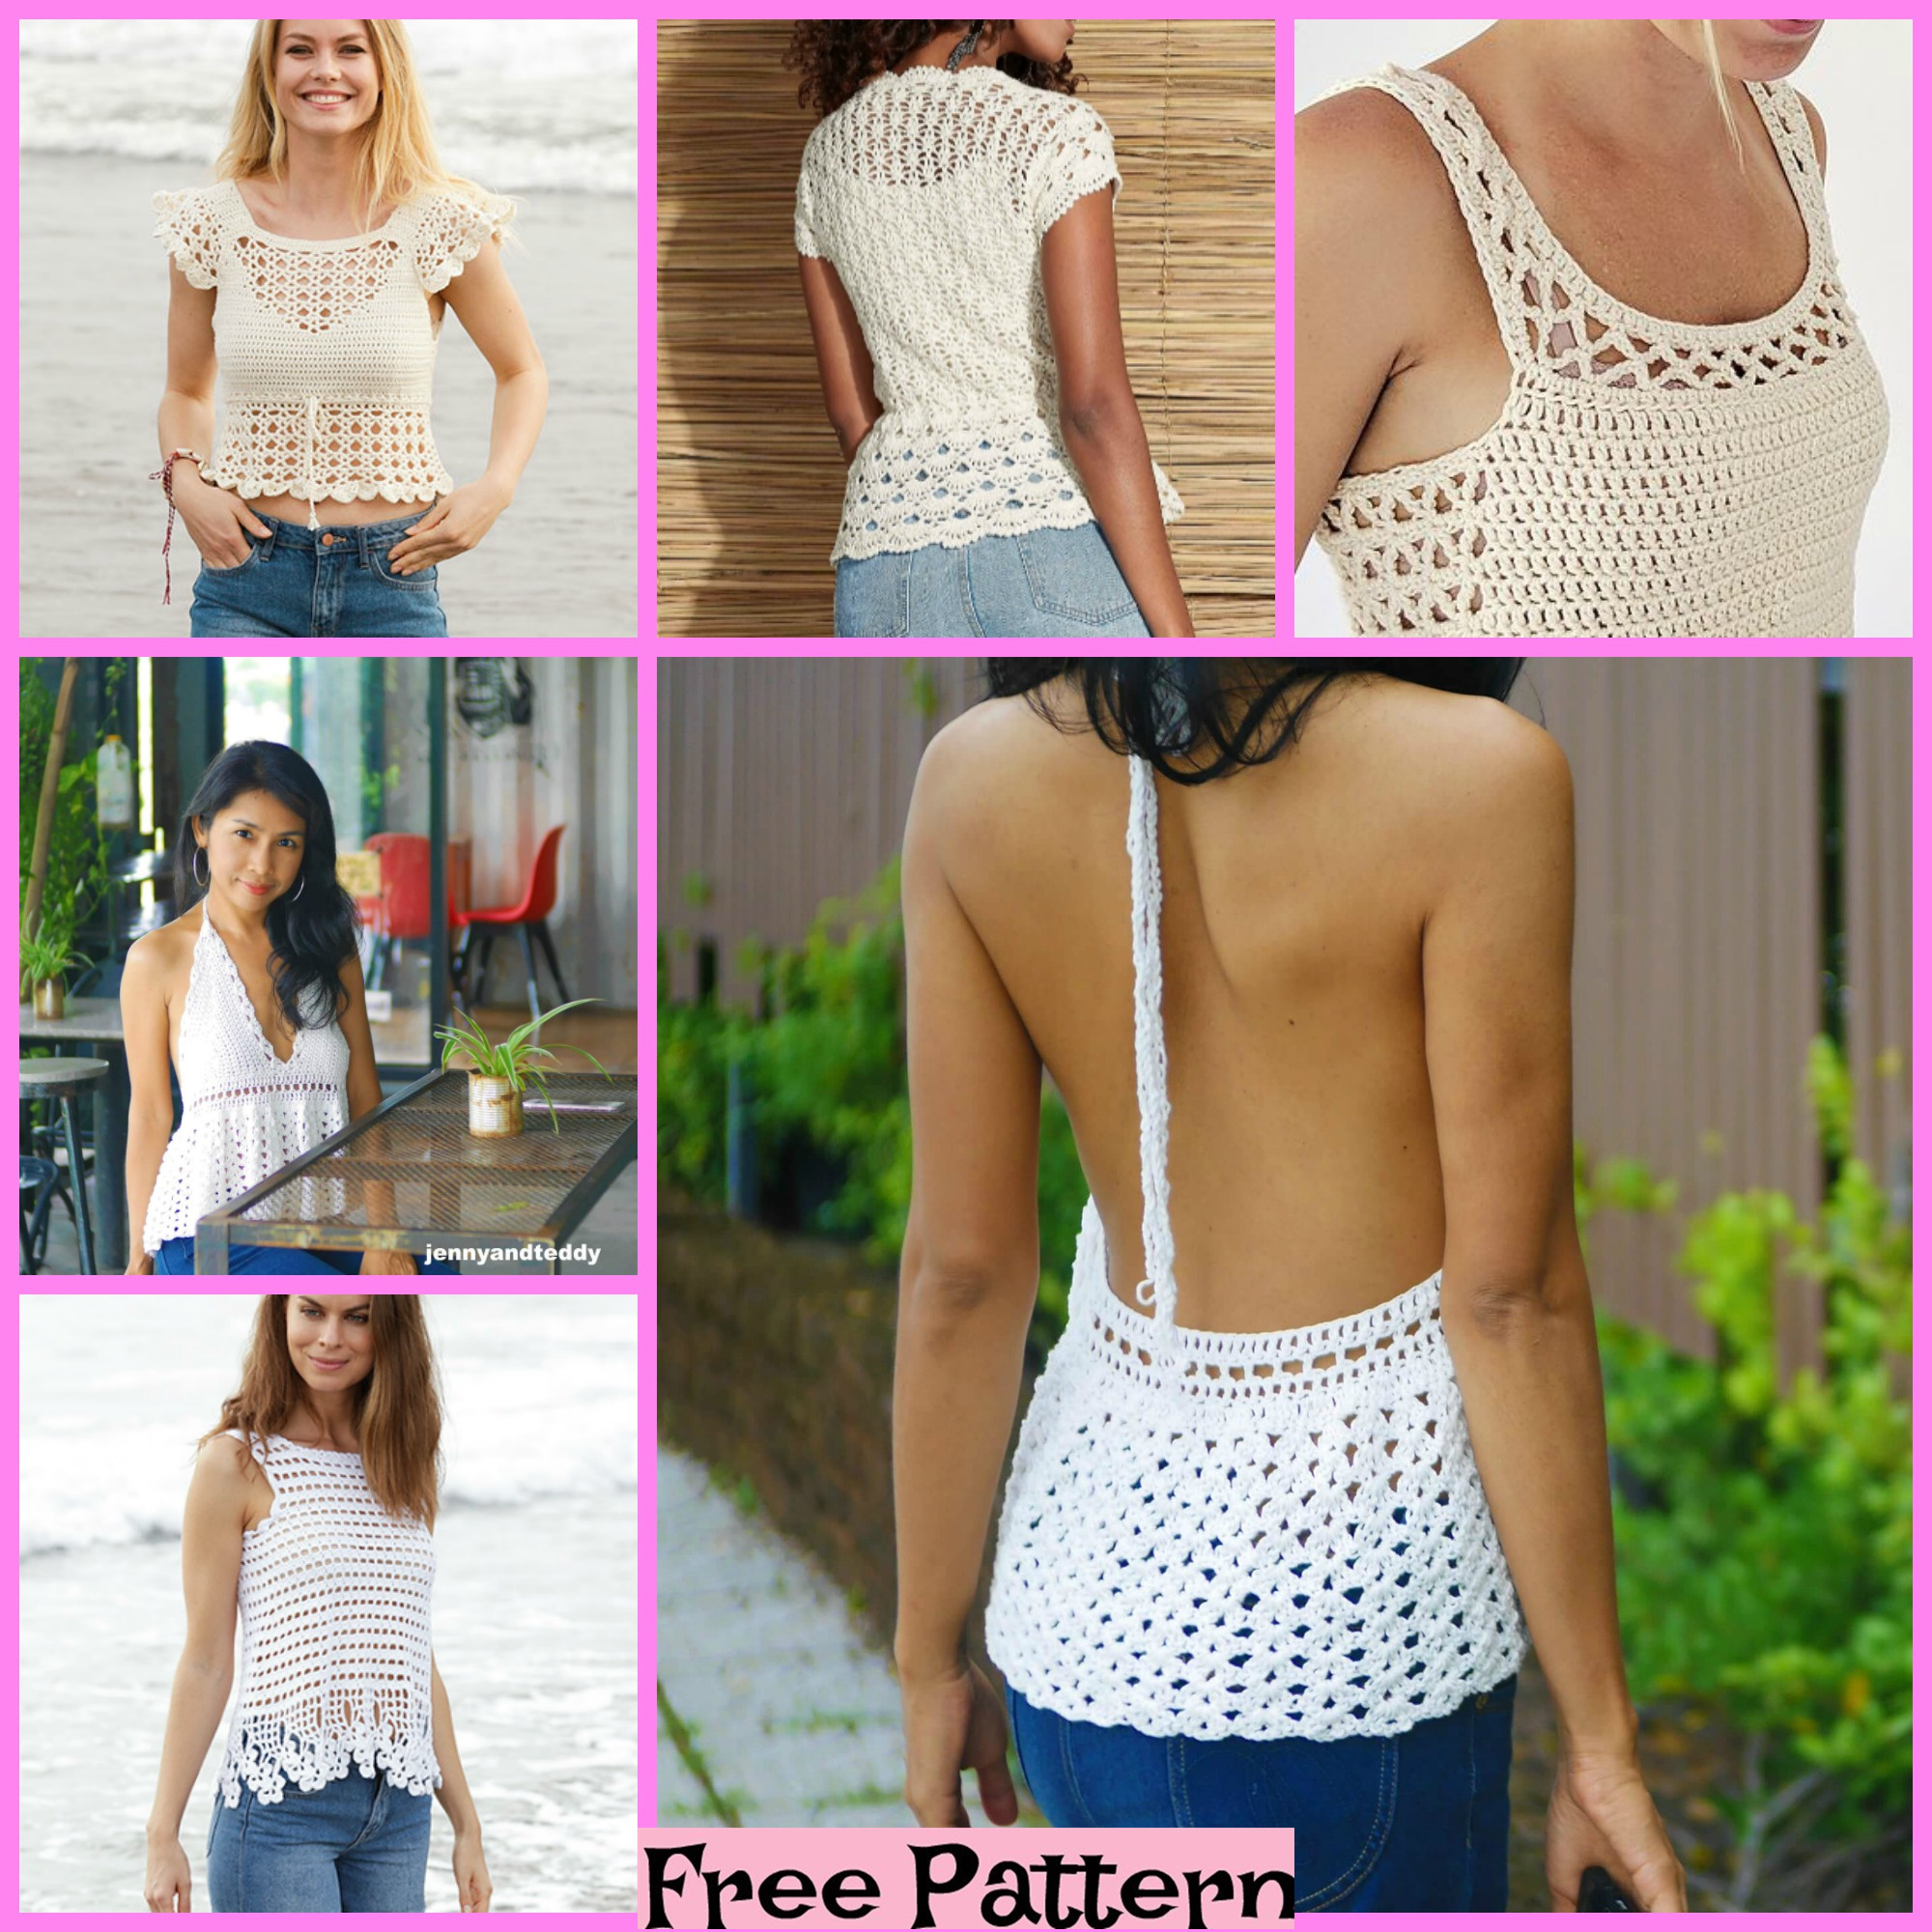 diy4ever-5 Most Beautiful Lace Tops - Free Pattern